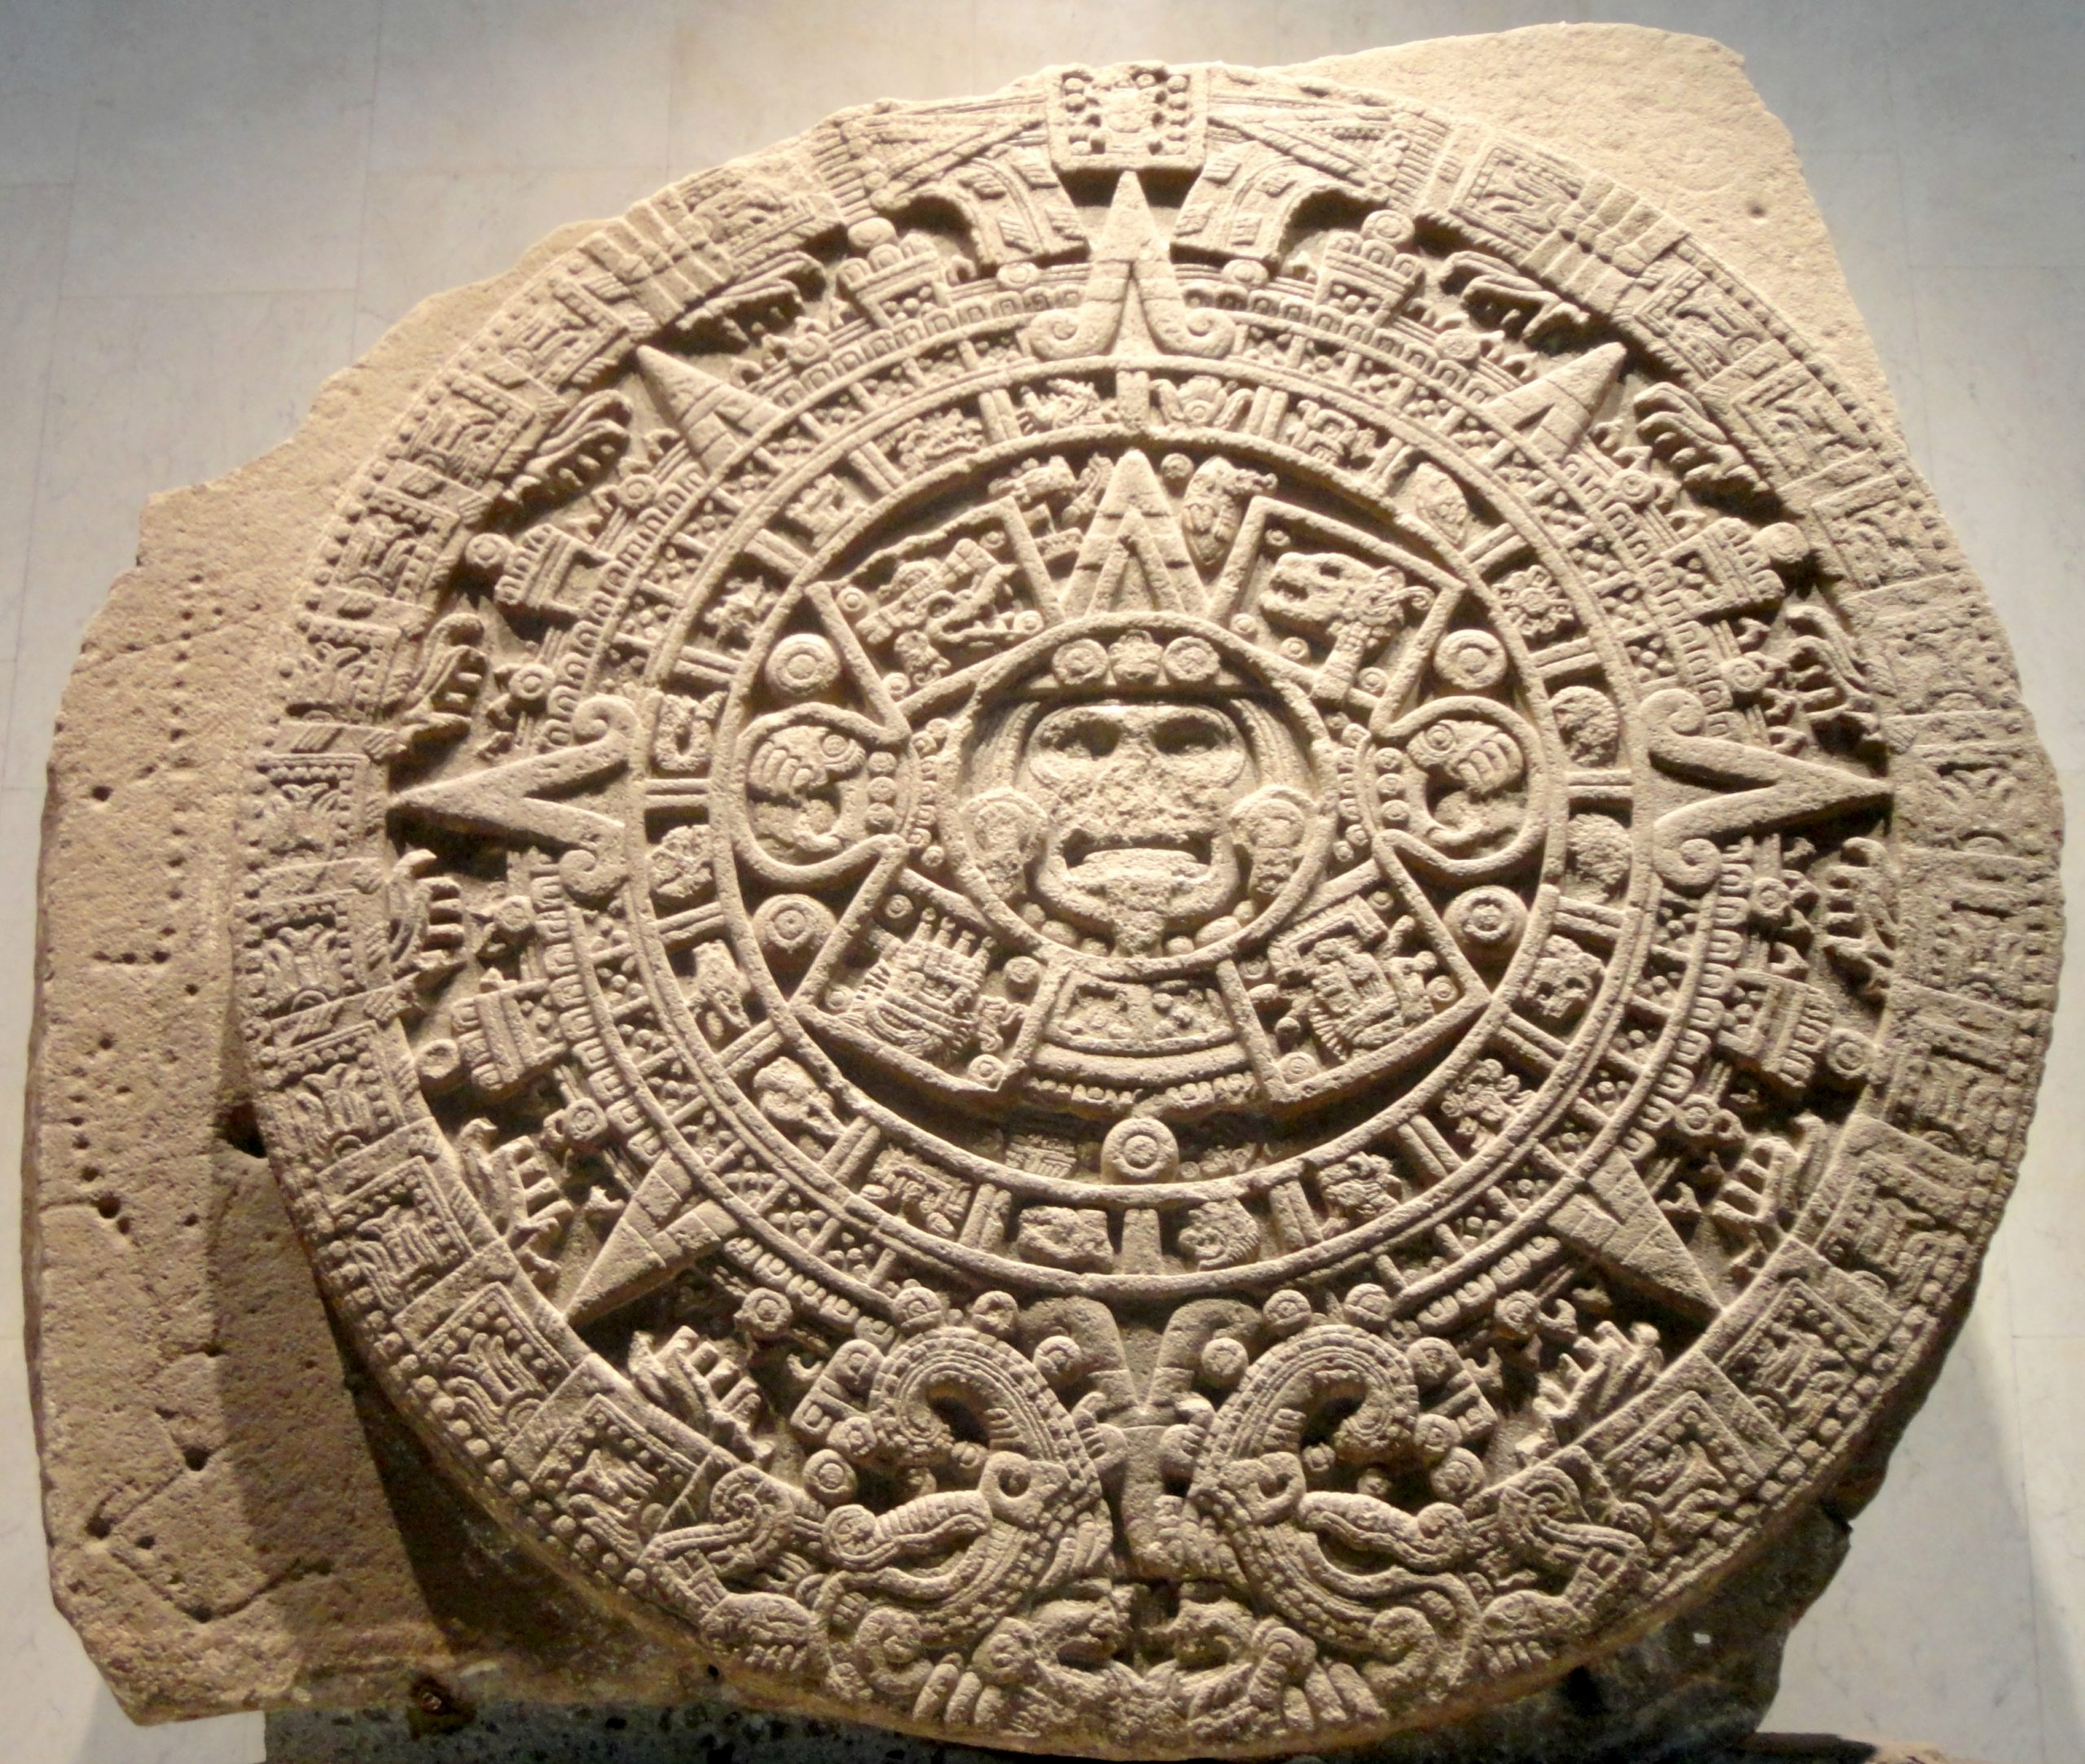 Aztec Sun Stone - Wikipedia Intended For How To Read Aztec Calendar - Printable Calendar 2020-2021